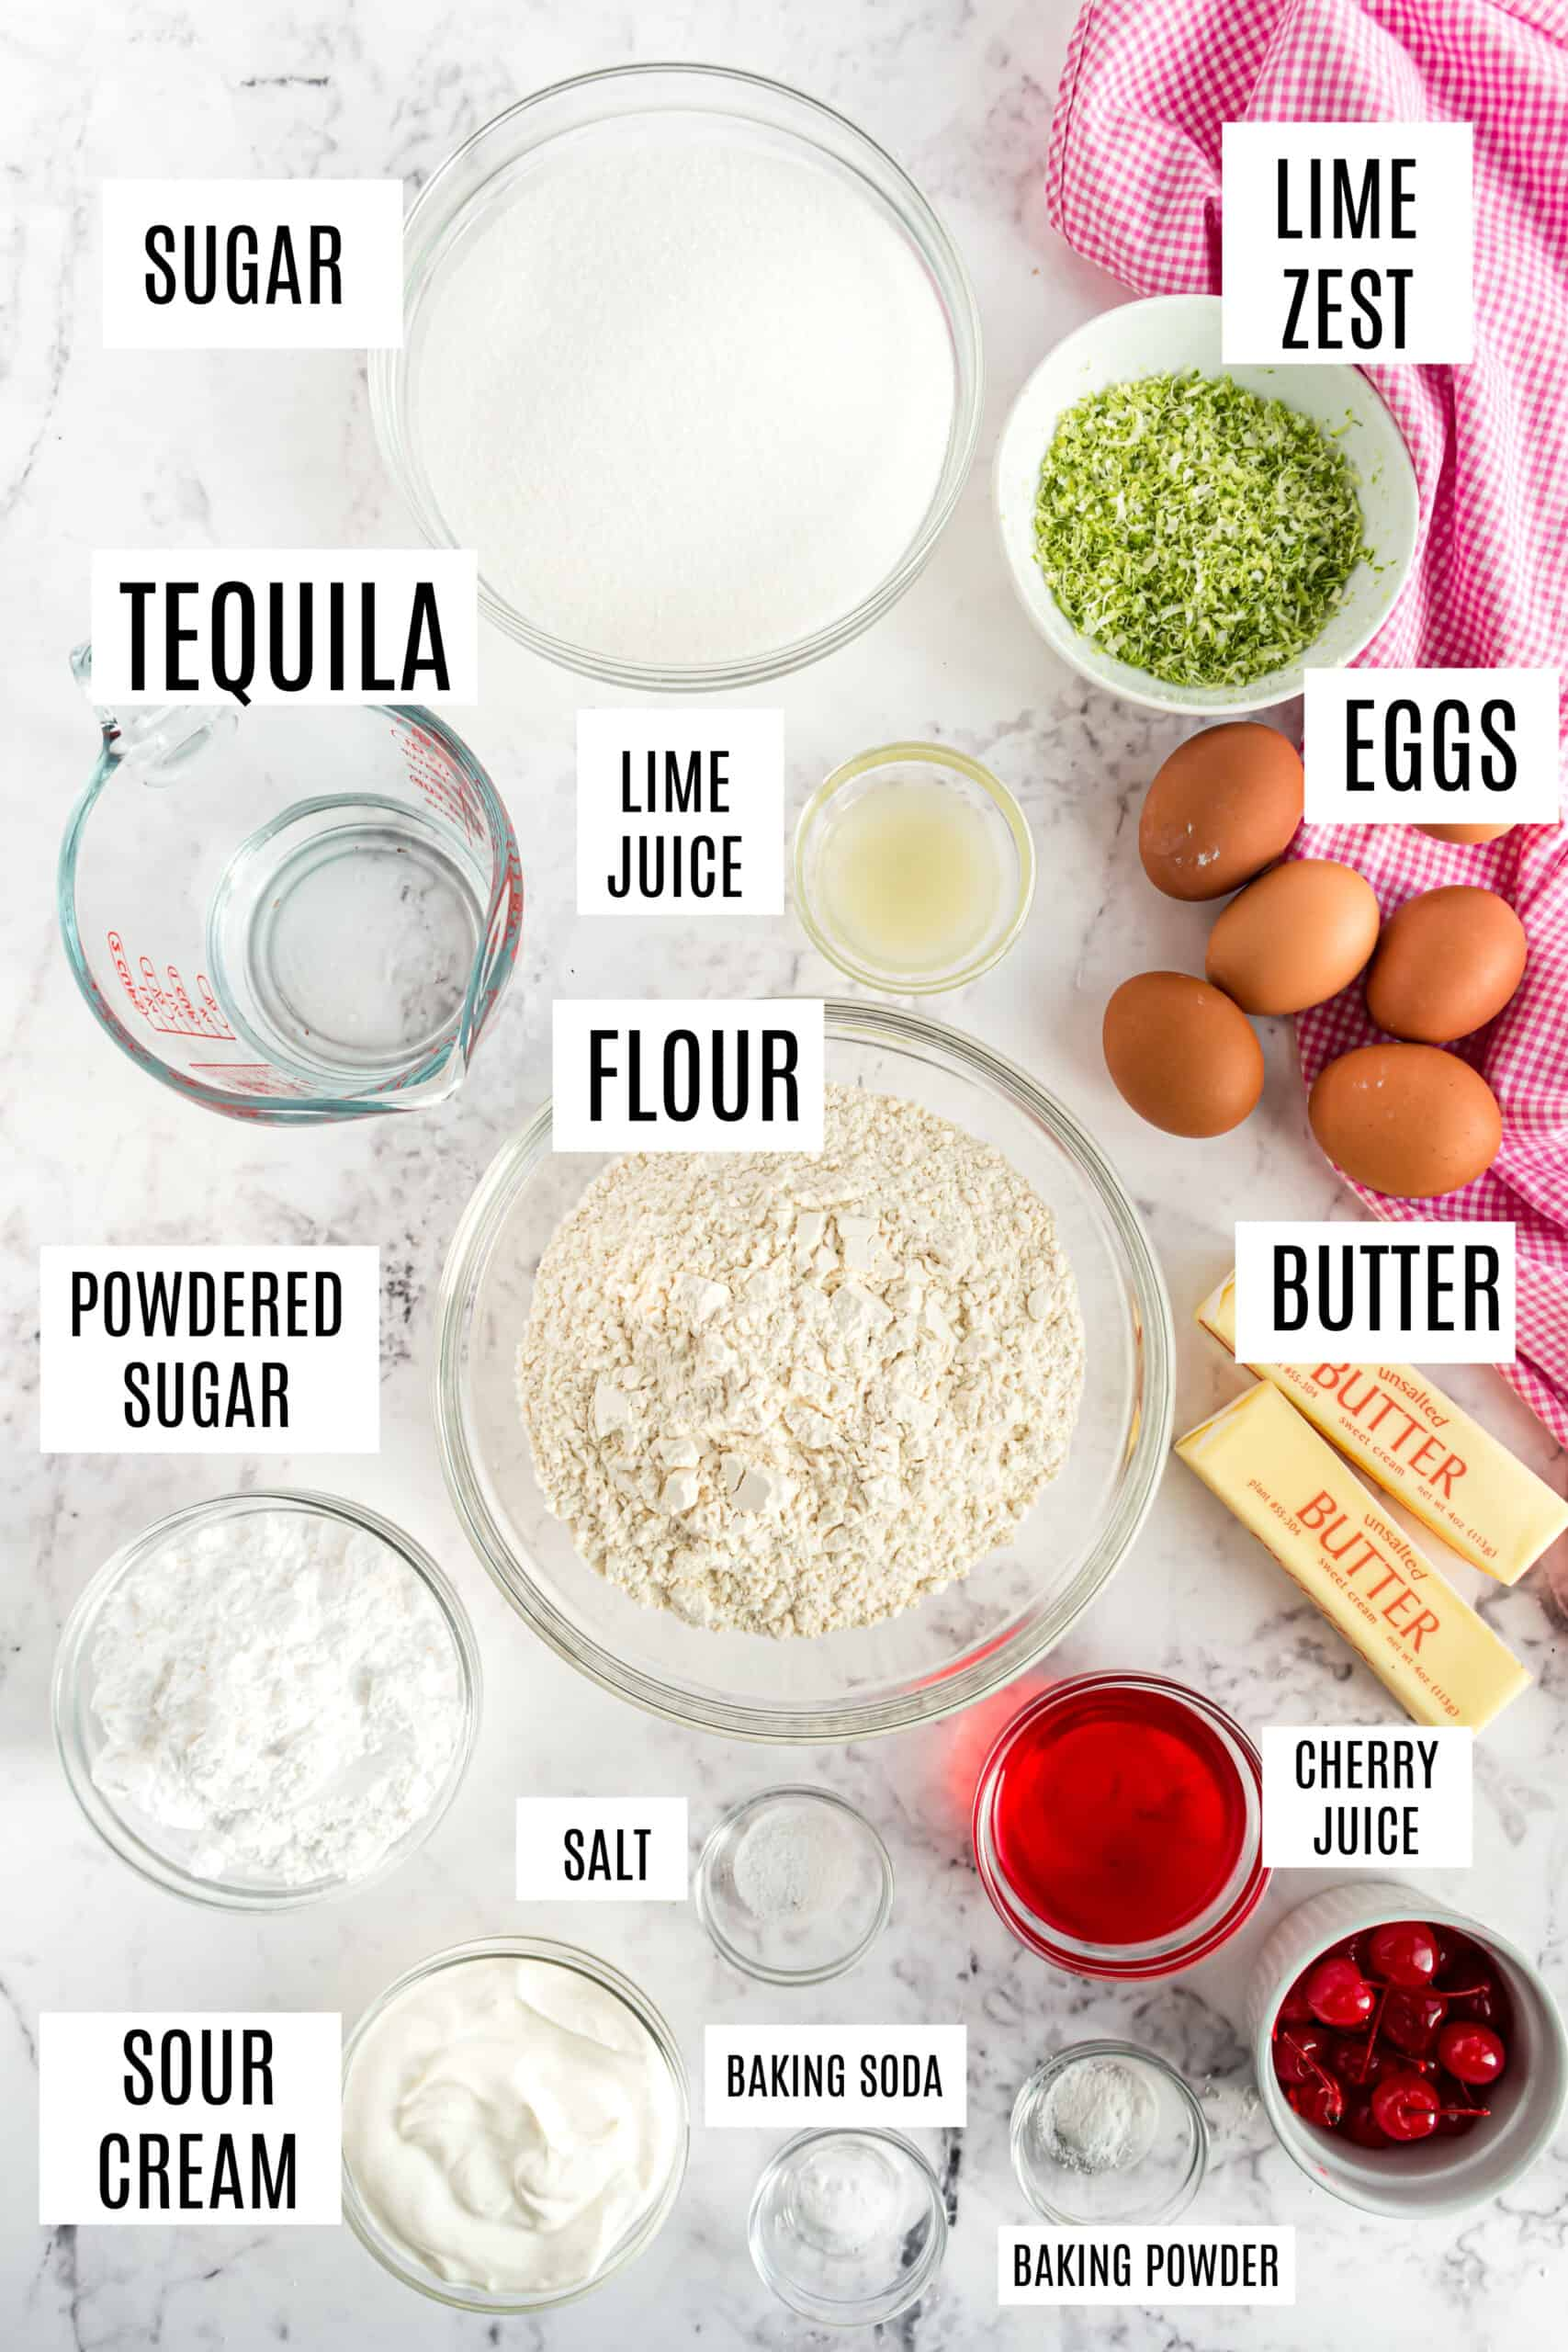 Ingredients needed to make cherry cake.